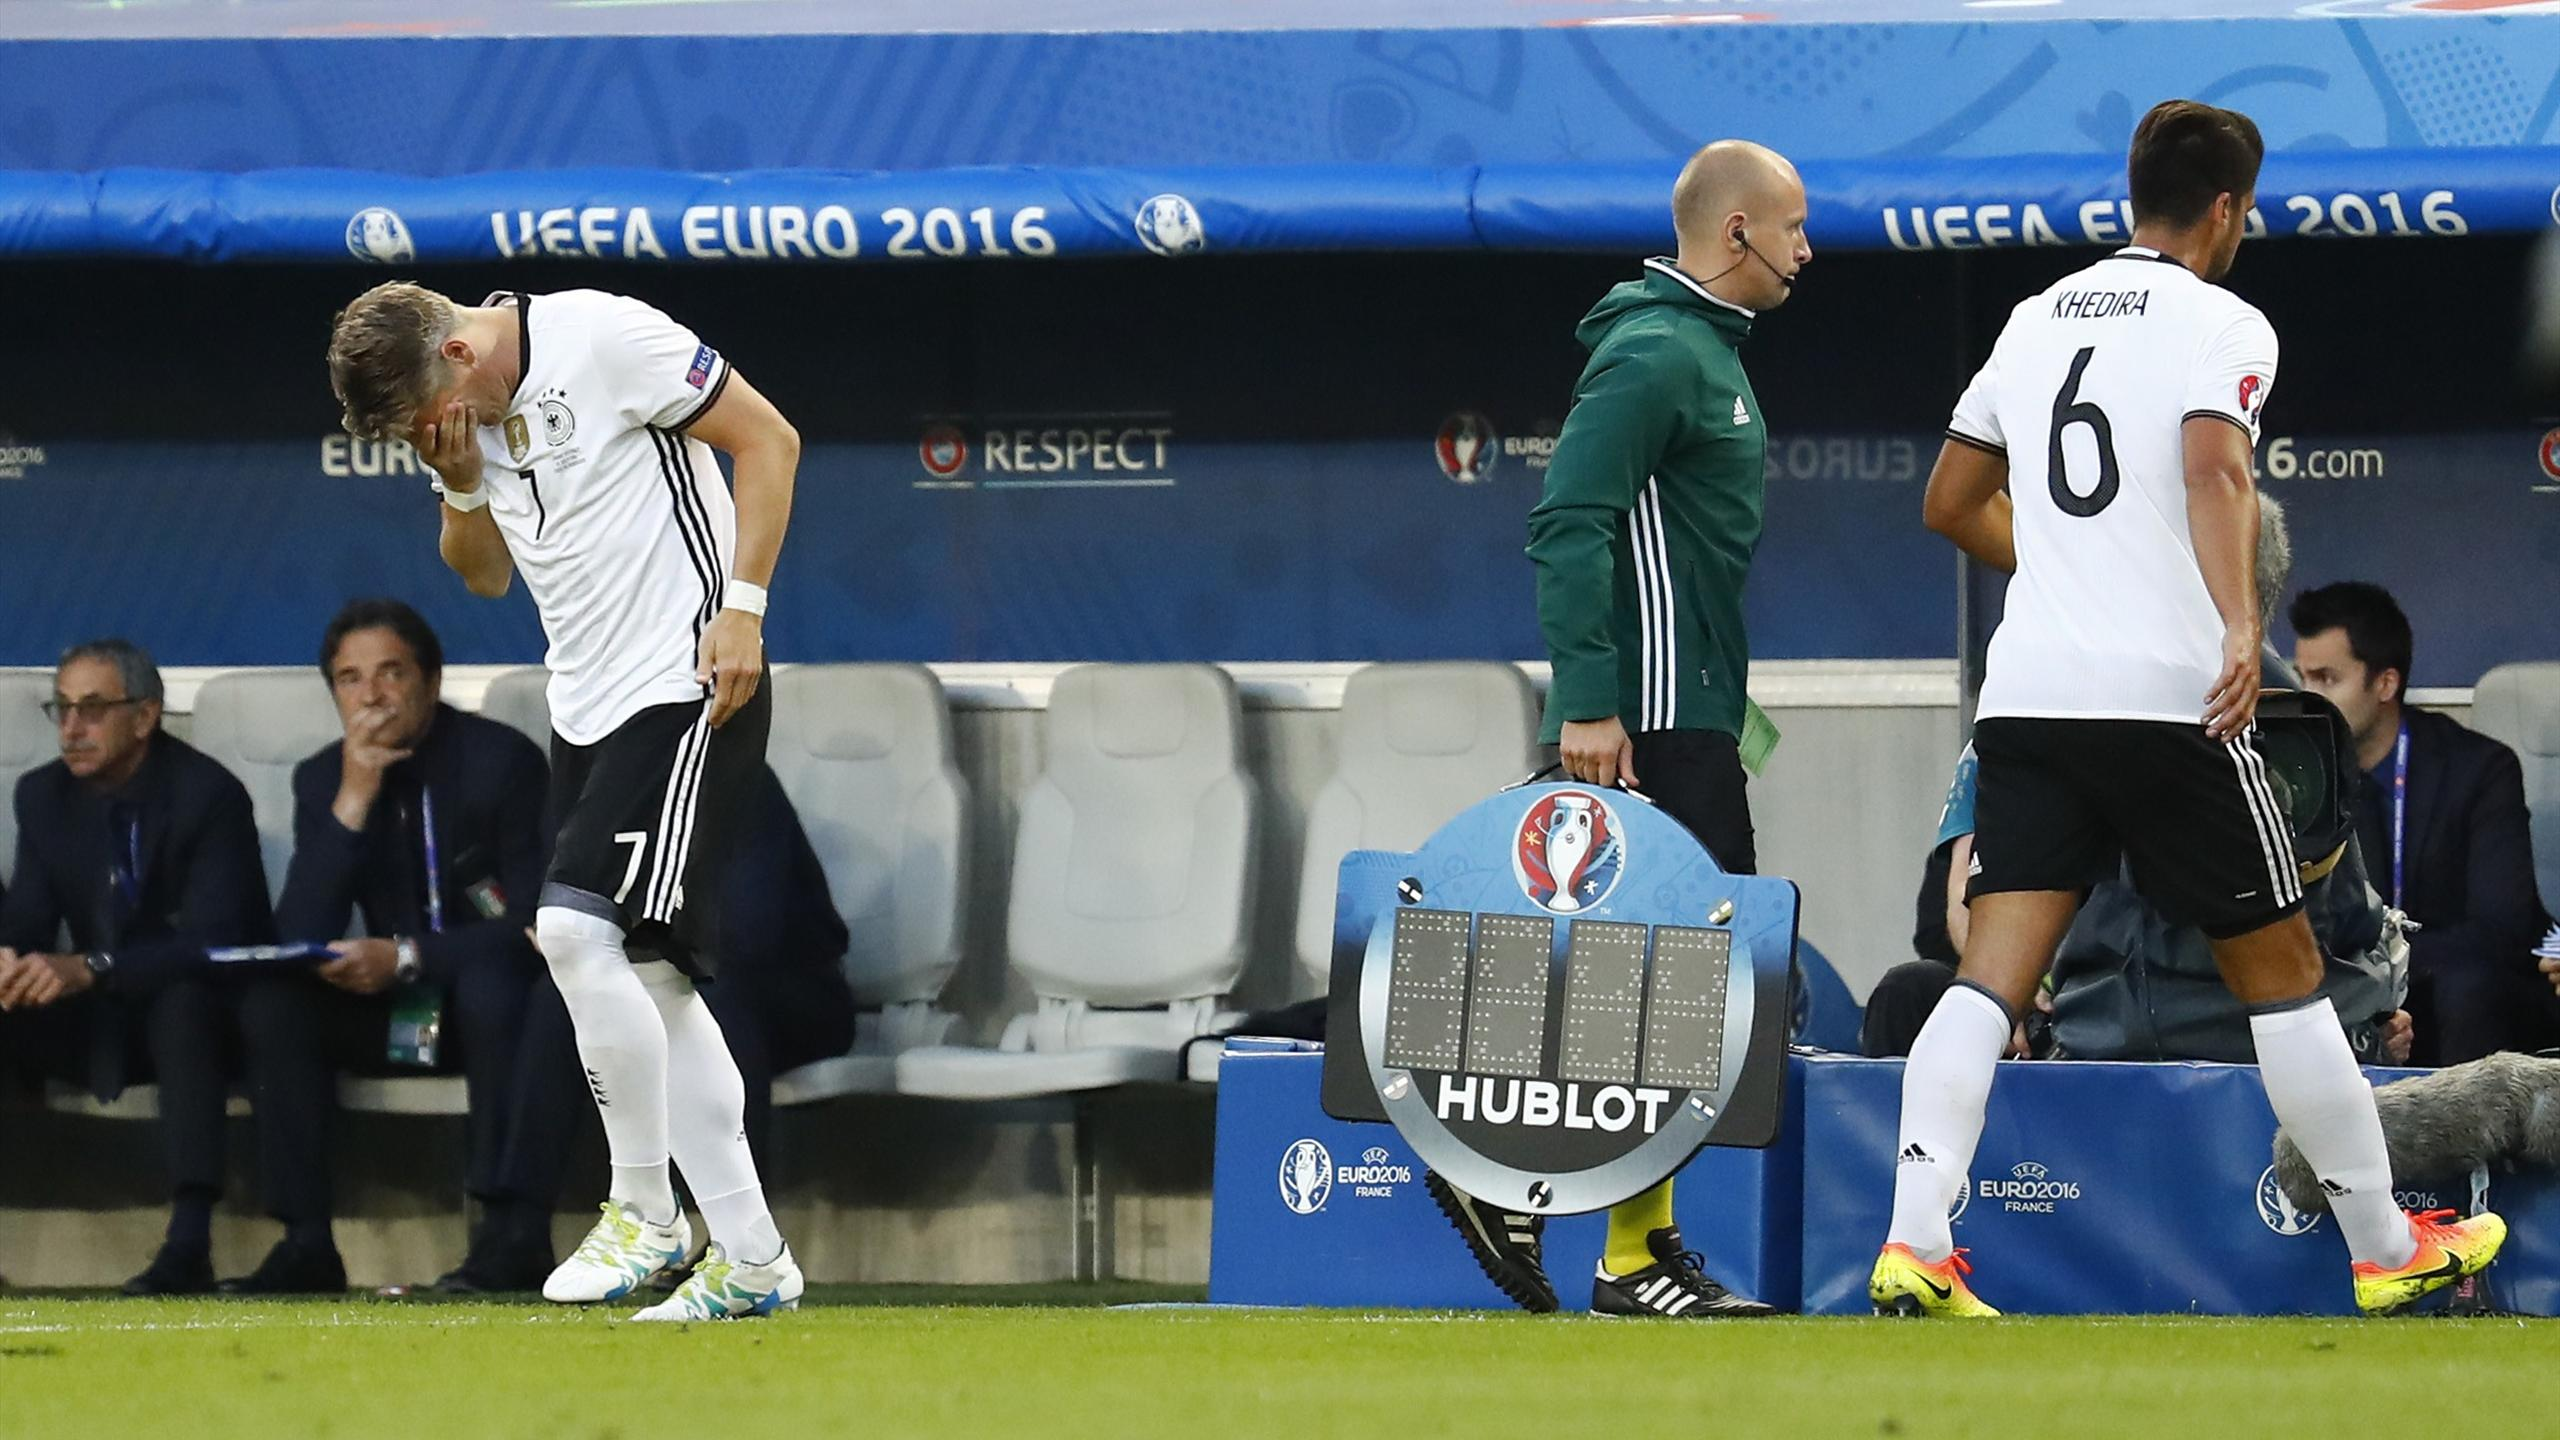 Germany's Bastian Schweinsteiger is substituted on for Sami Khedira